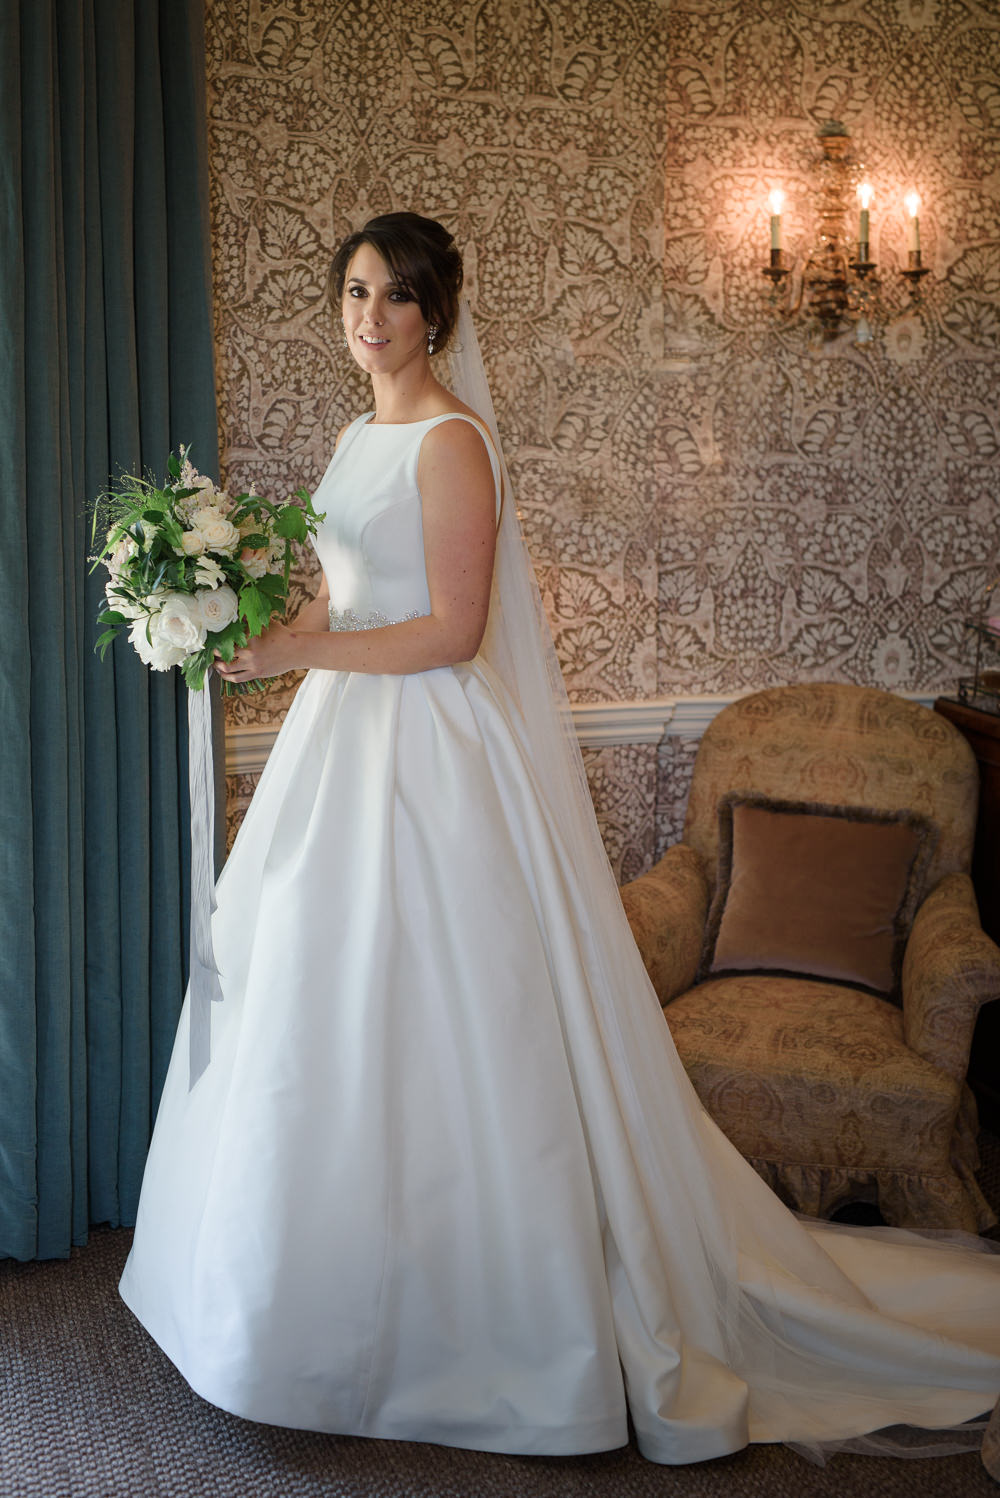 Bride Bridal A Line Dress Straps Sleeveless Silk Veil Babington House Wedding Ria Mishaal Photography